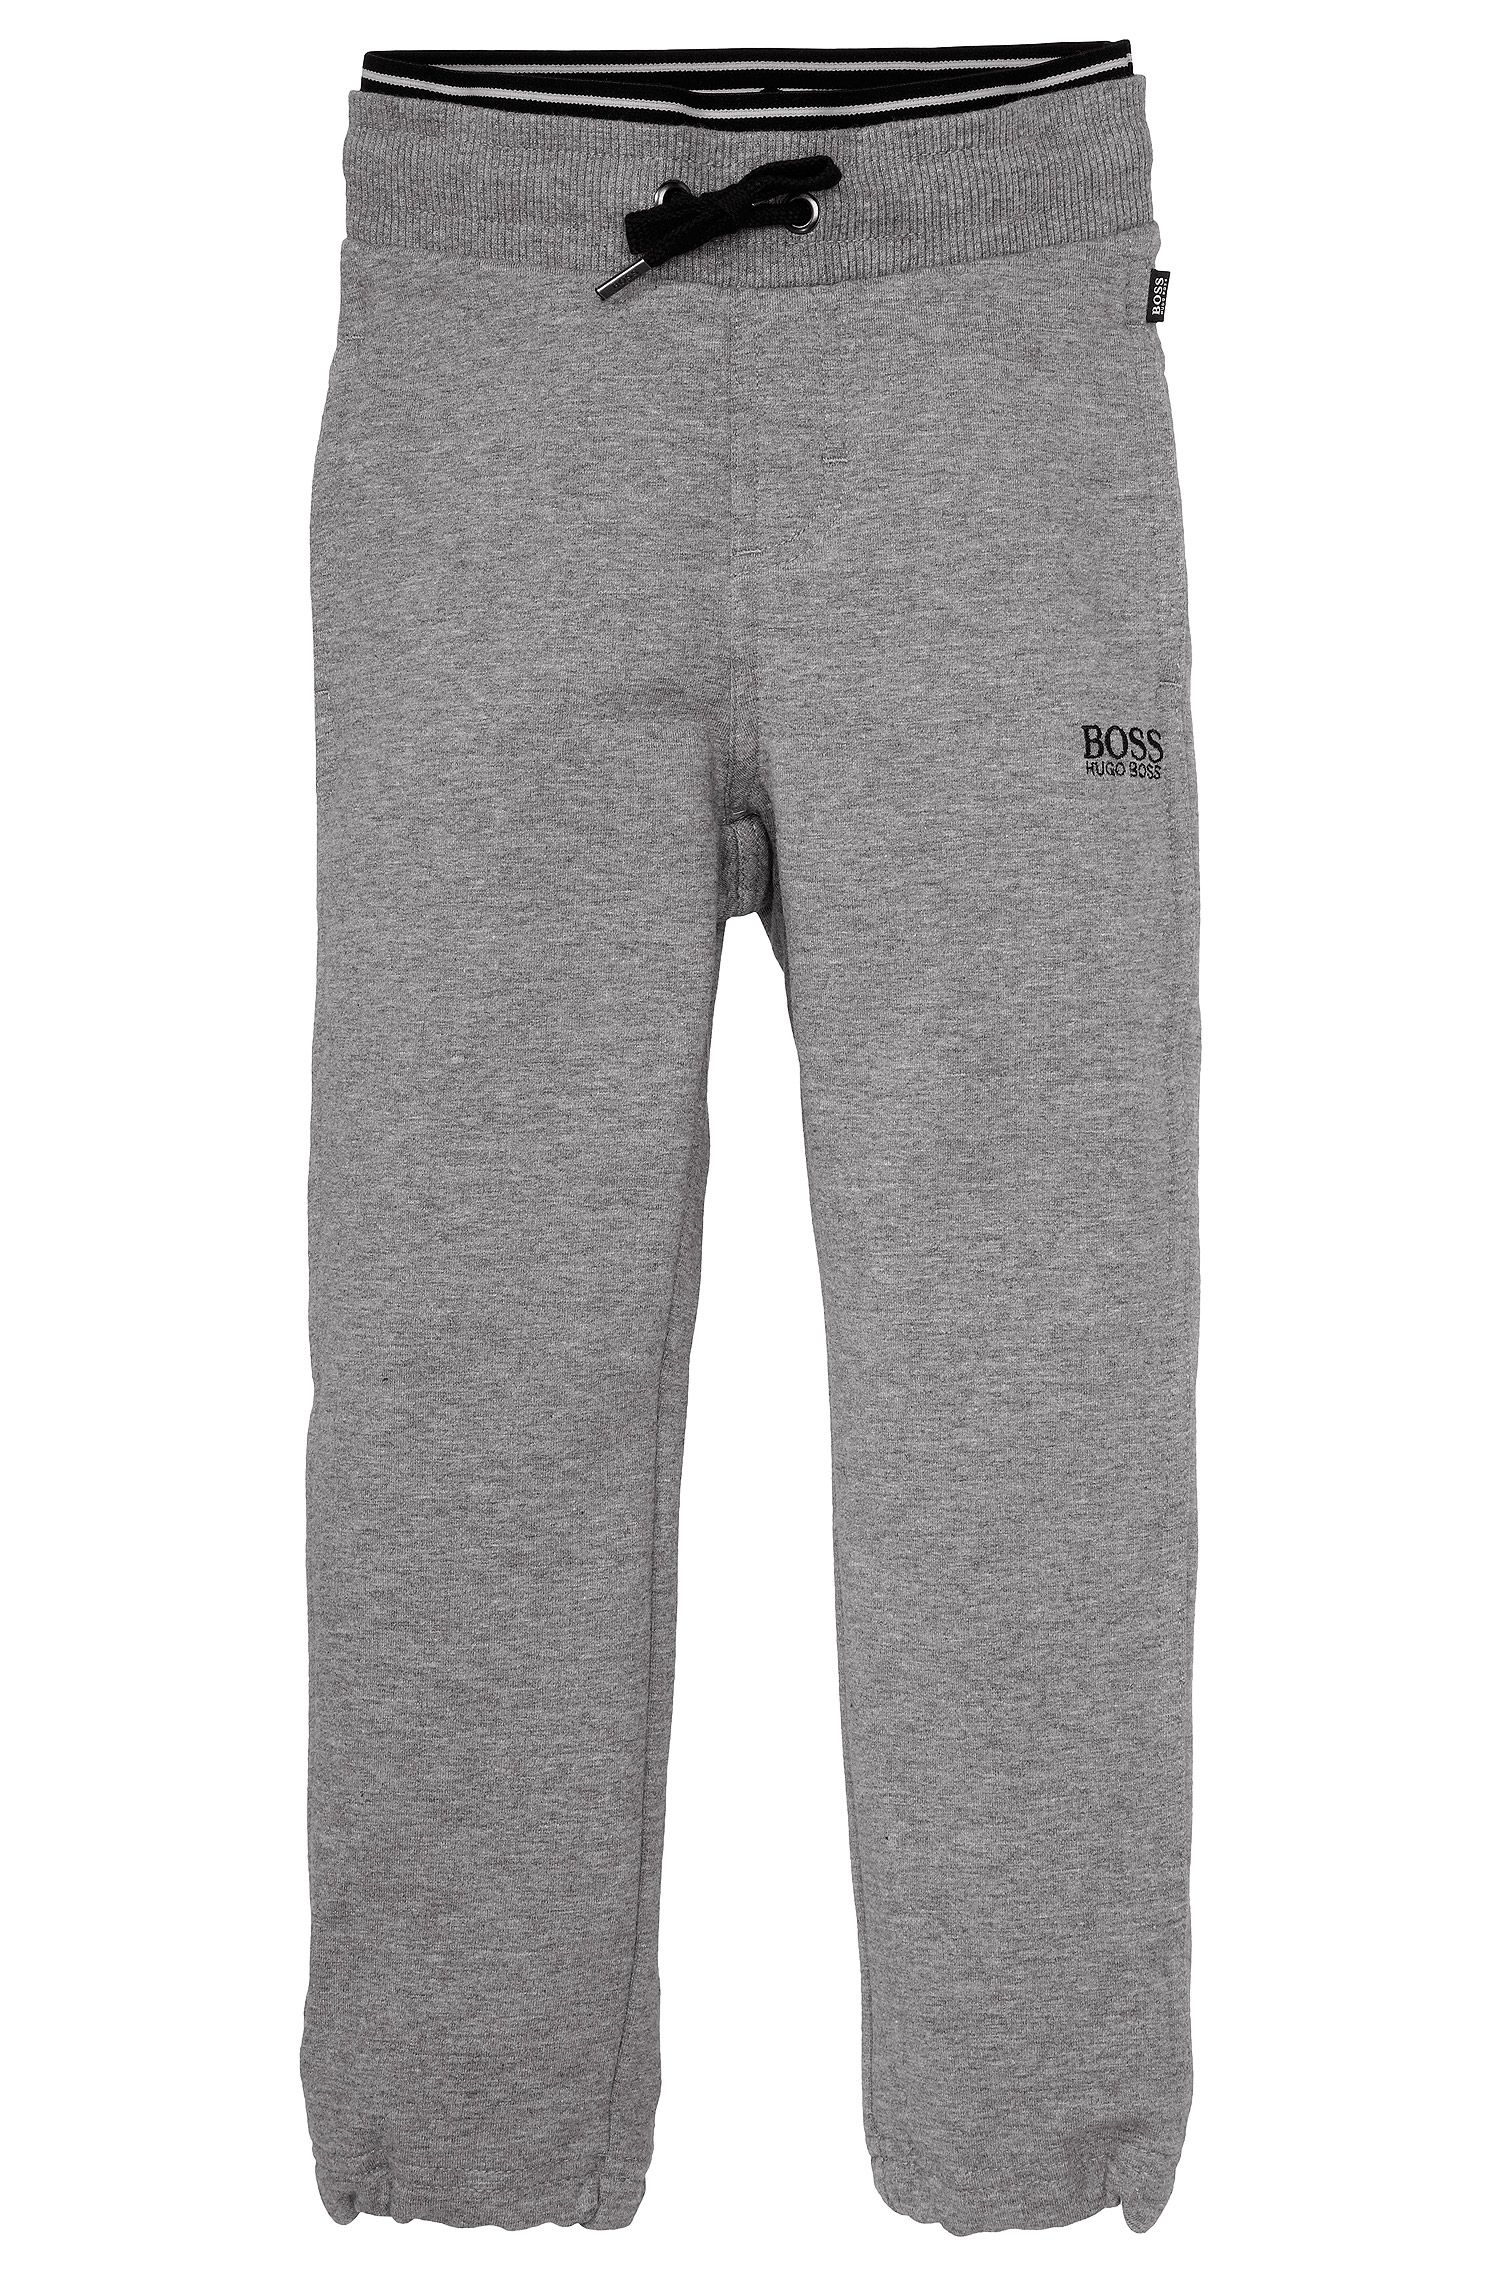 Kids-Jogging-Hose ´J24300` aus Baumwoll-Mix